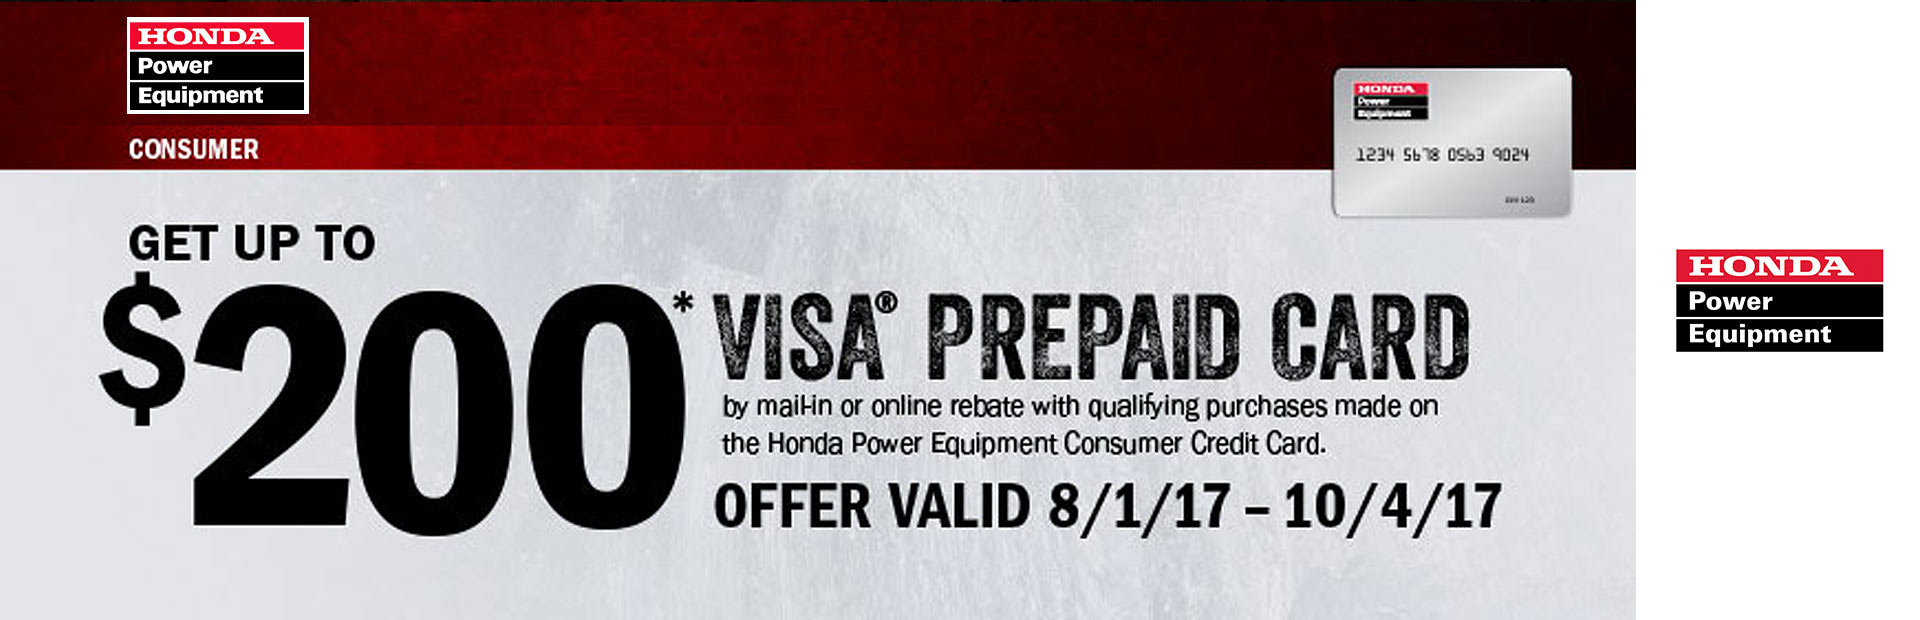 Honda Power Equipment: Get Up To A $200 Visa Prepaid Card